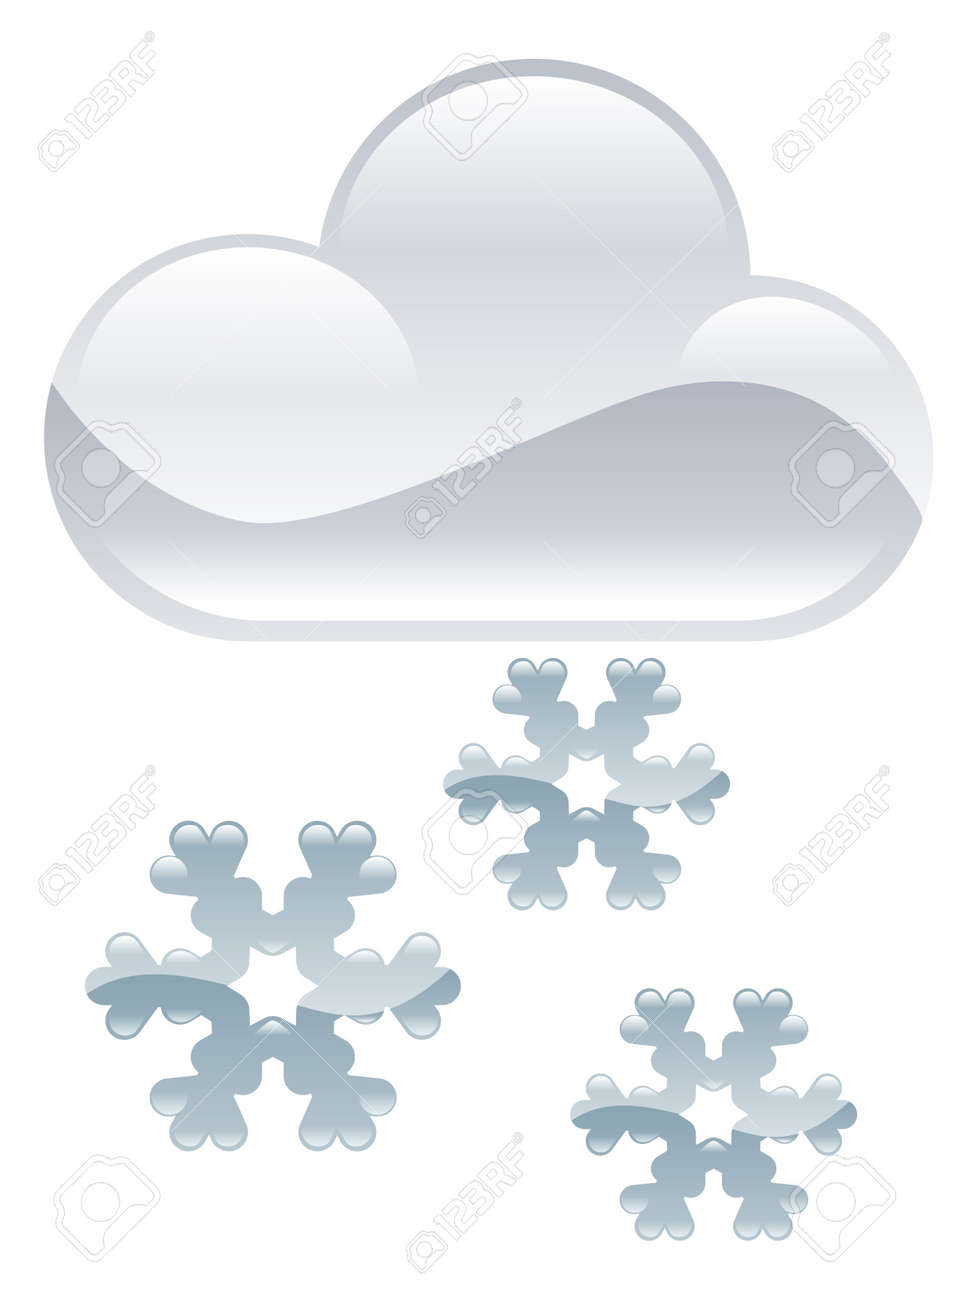 Weather icon clipart snow flakes illustration Stock Vector - 21683599